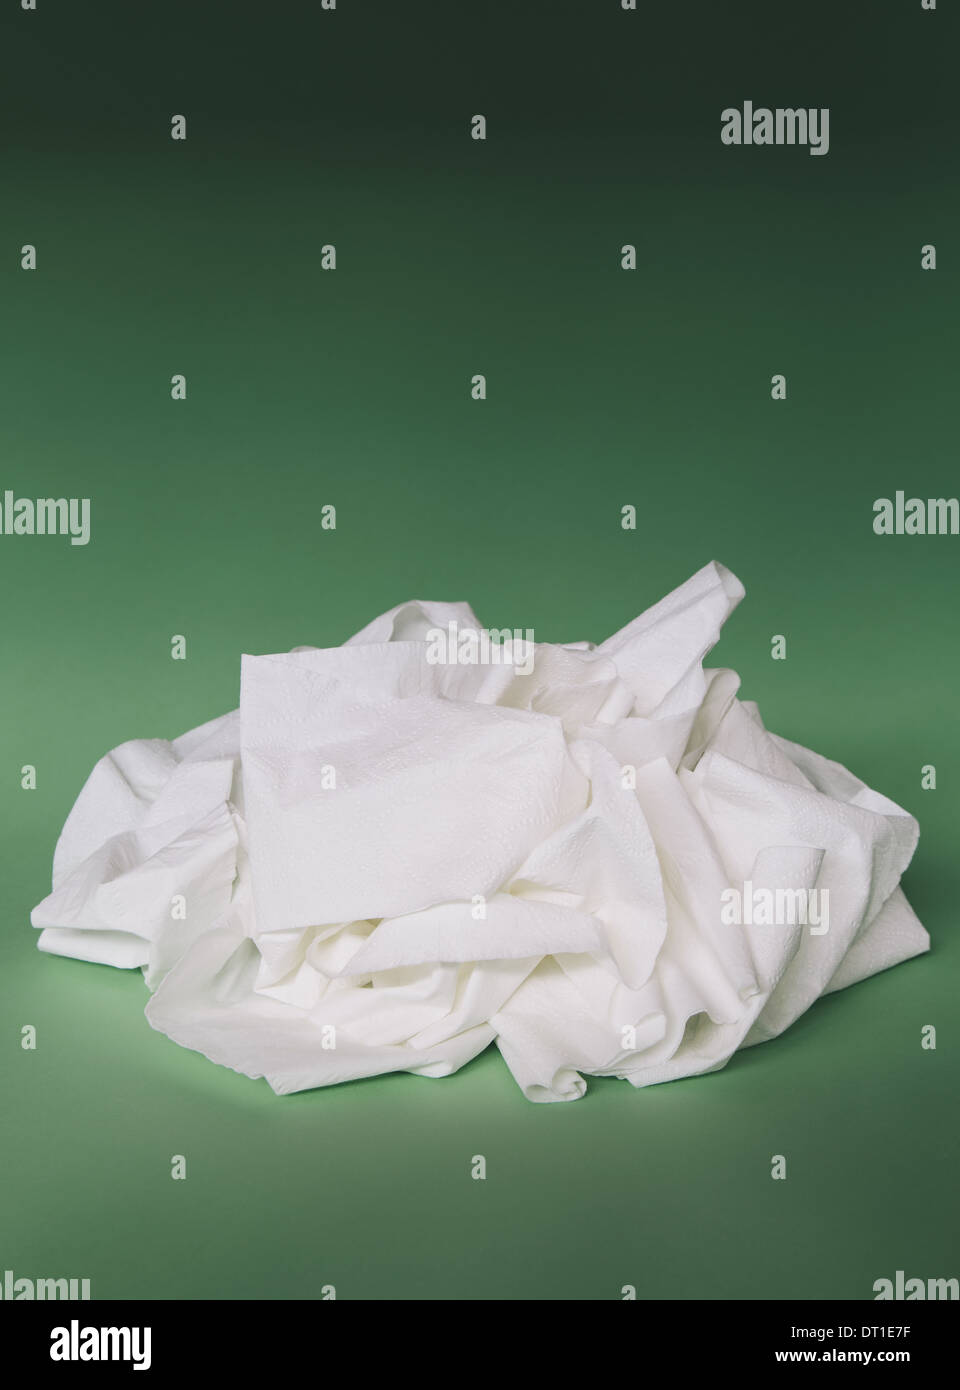 unwound toilet paper in heap on green background - Stock Image